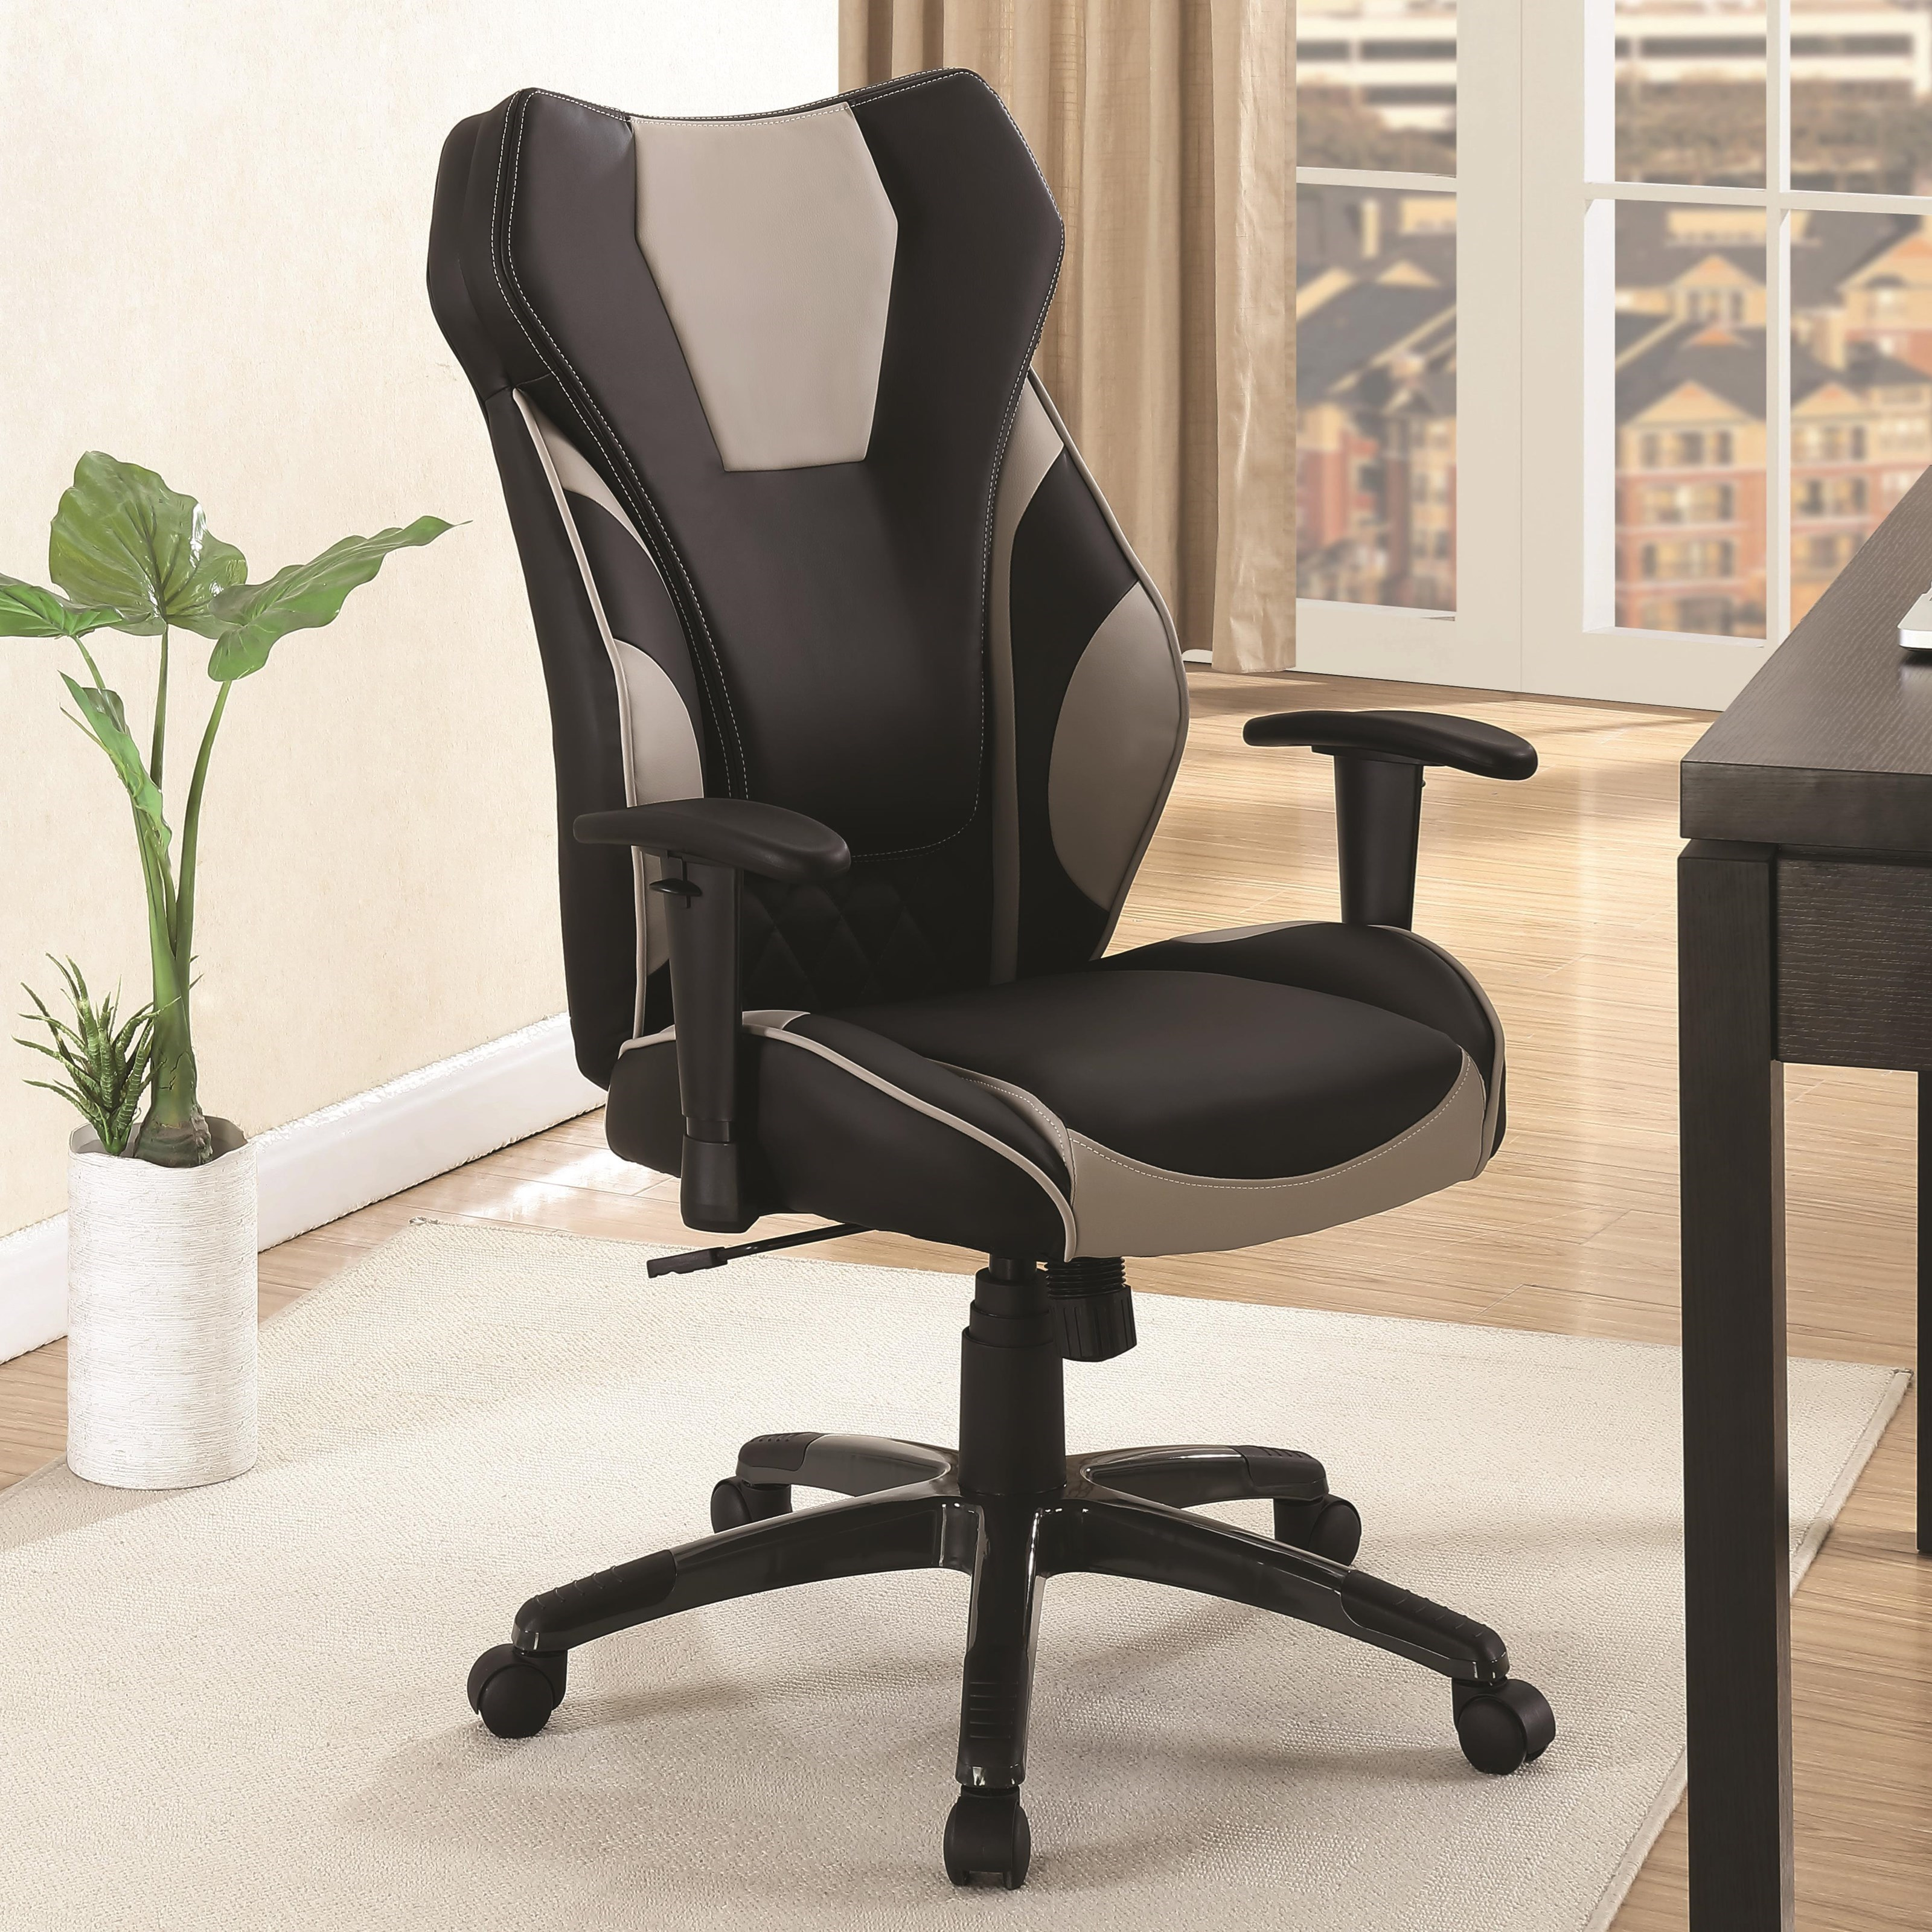 las vegas office chairs banquet hall chair covers for sale coaster 801470 leatherette high back